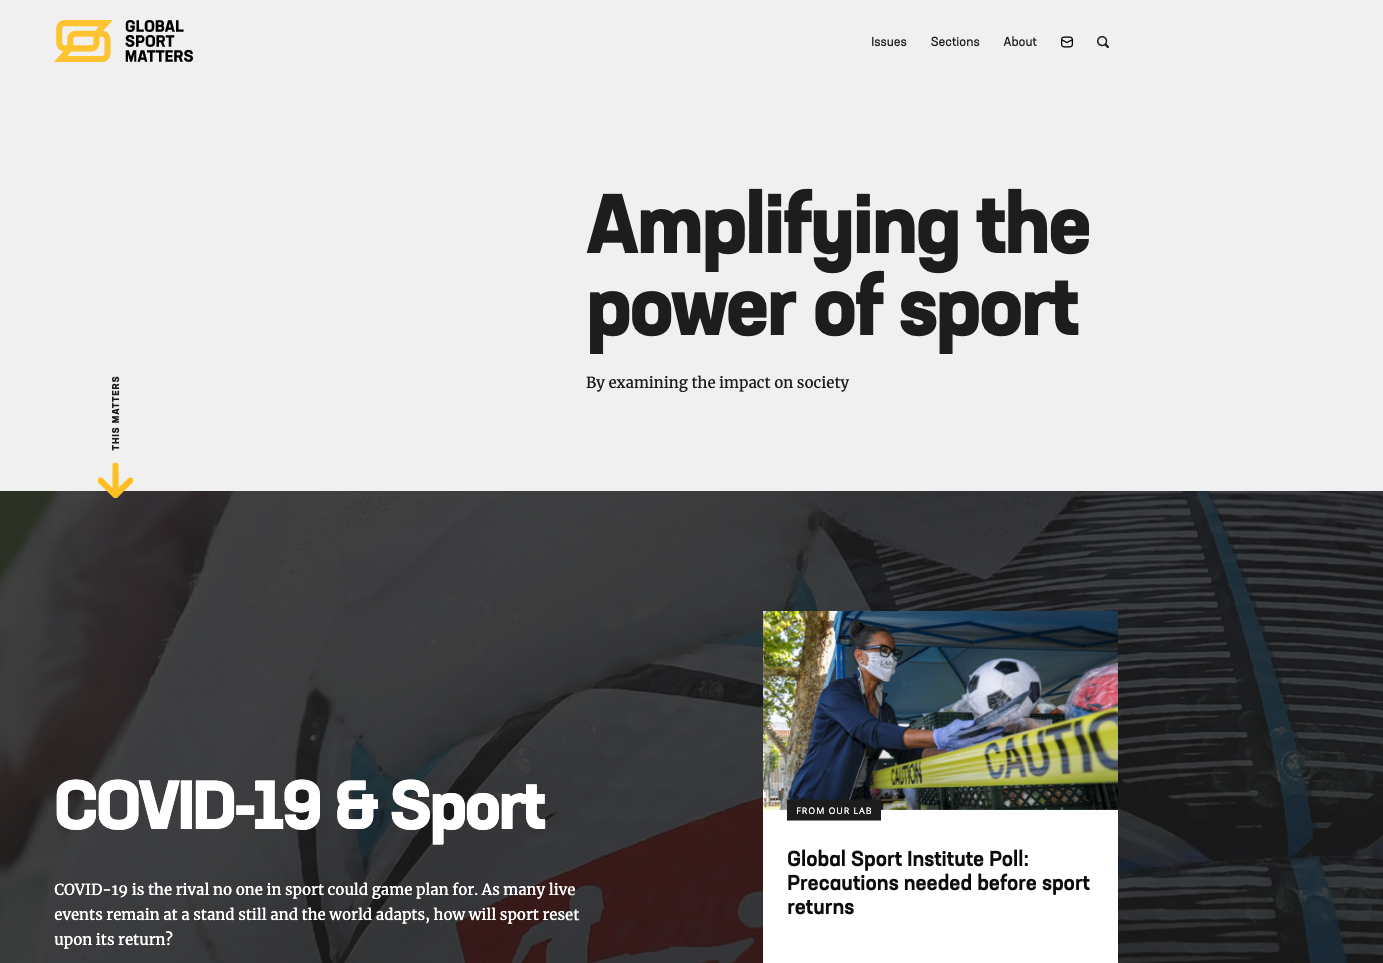 Screenshot of the Global Sport Matters website homepage.